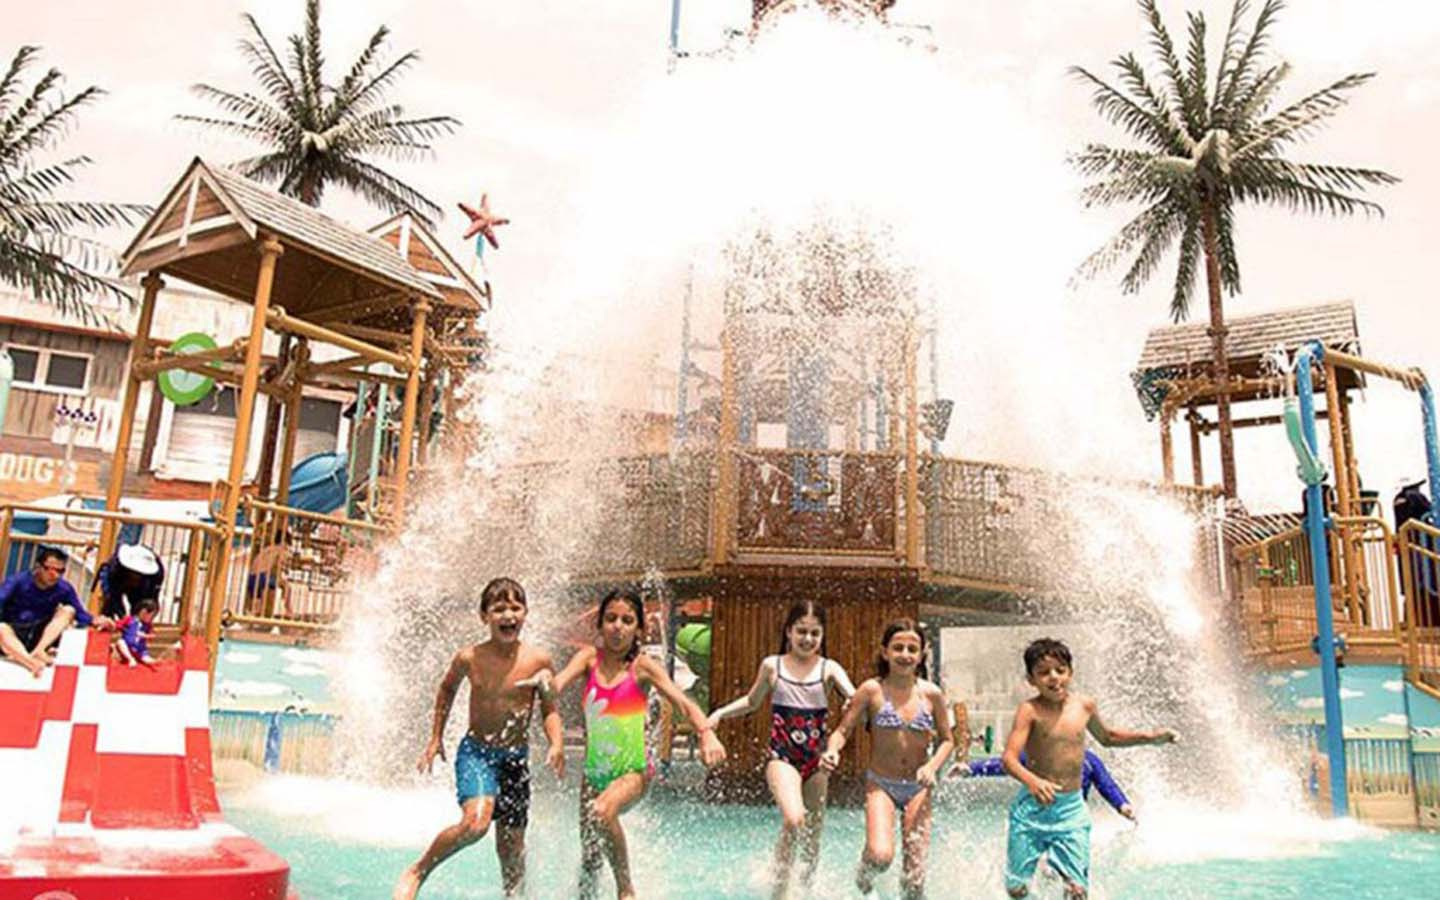 Kids splashing water at Laguna waterpark in Dubai